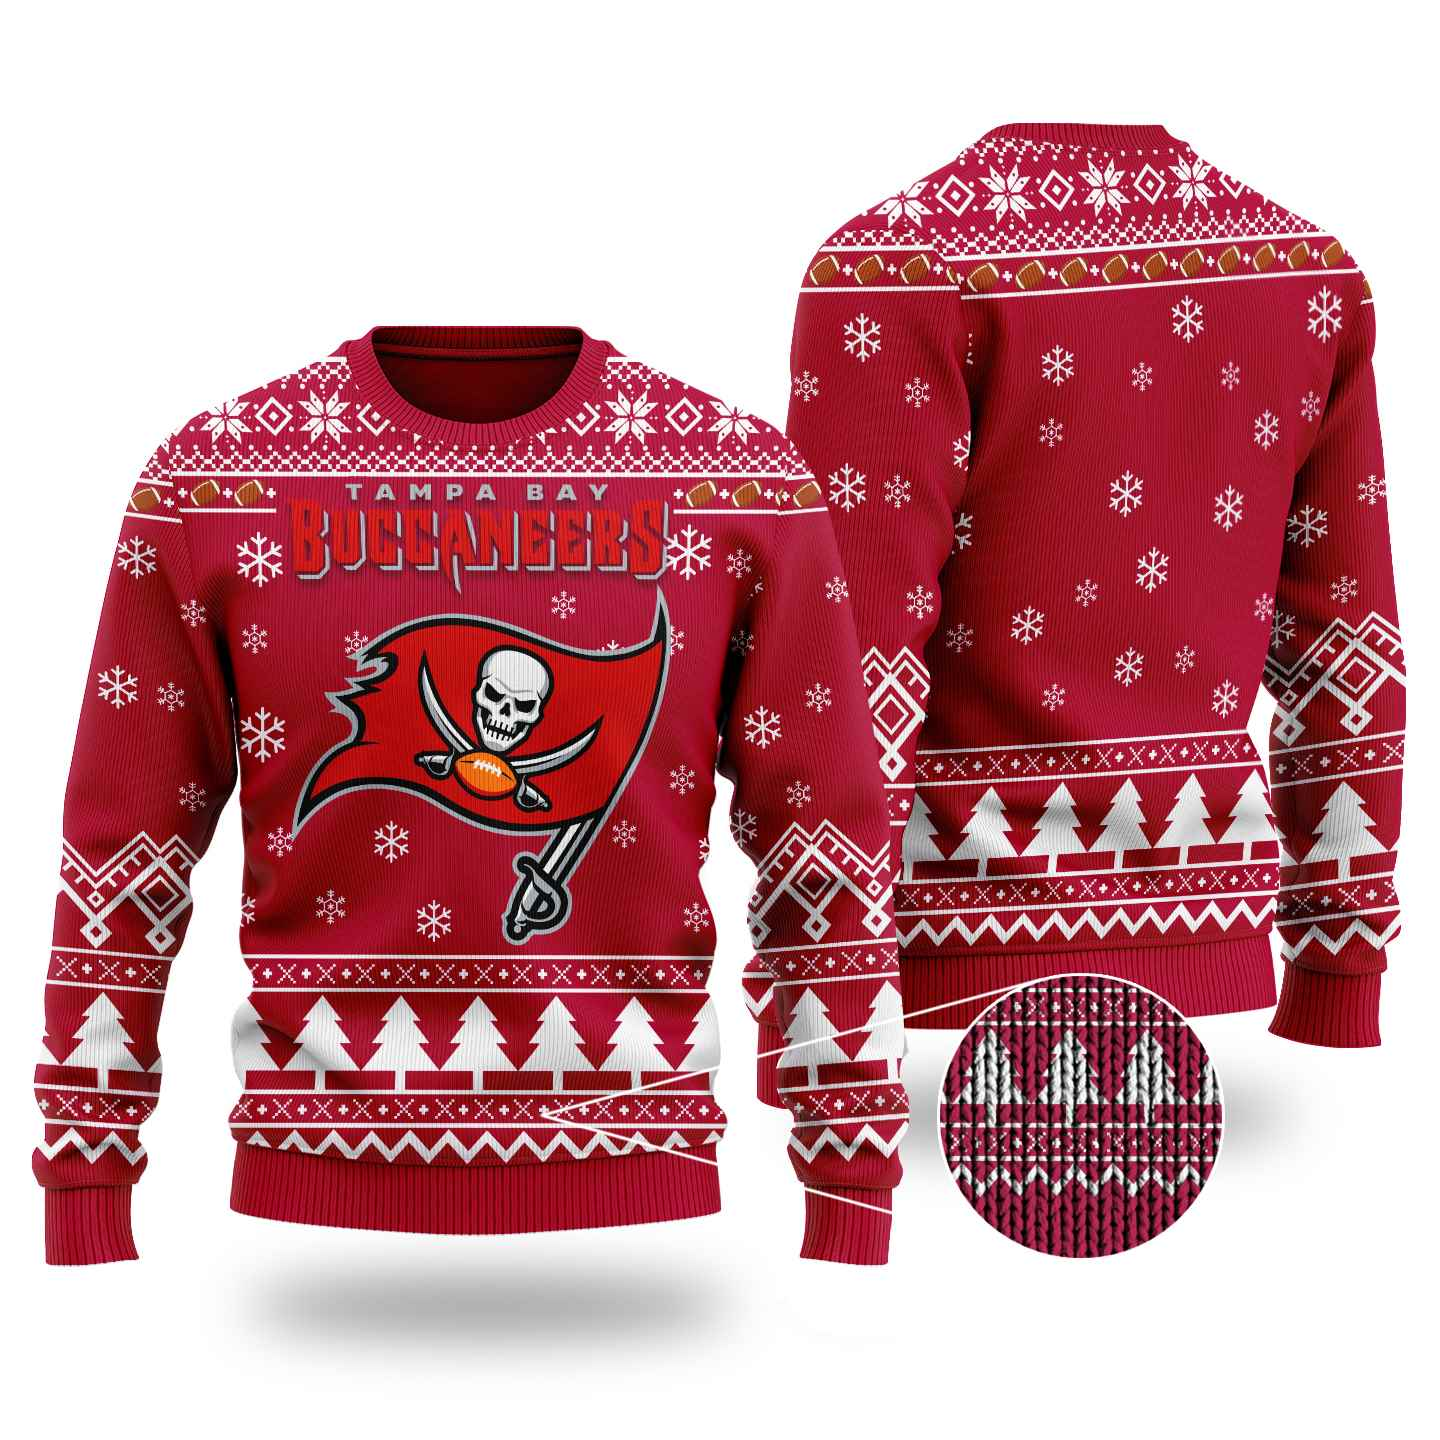 Nfl Tampa Bay Buccaneers Chibi Ugly Christmas Sweater Wool Material